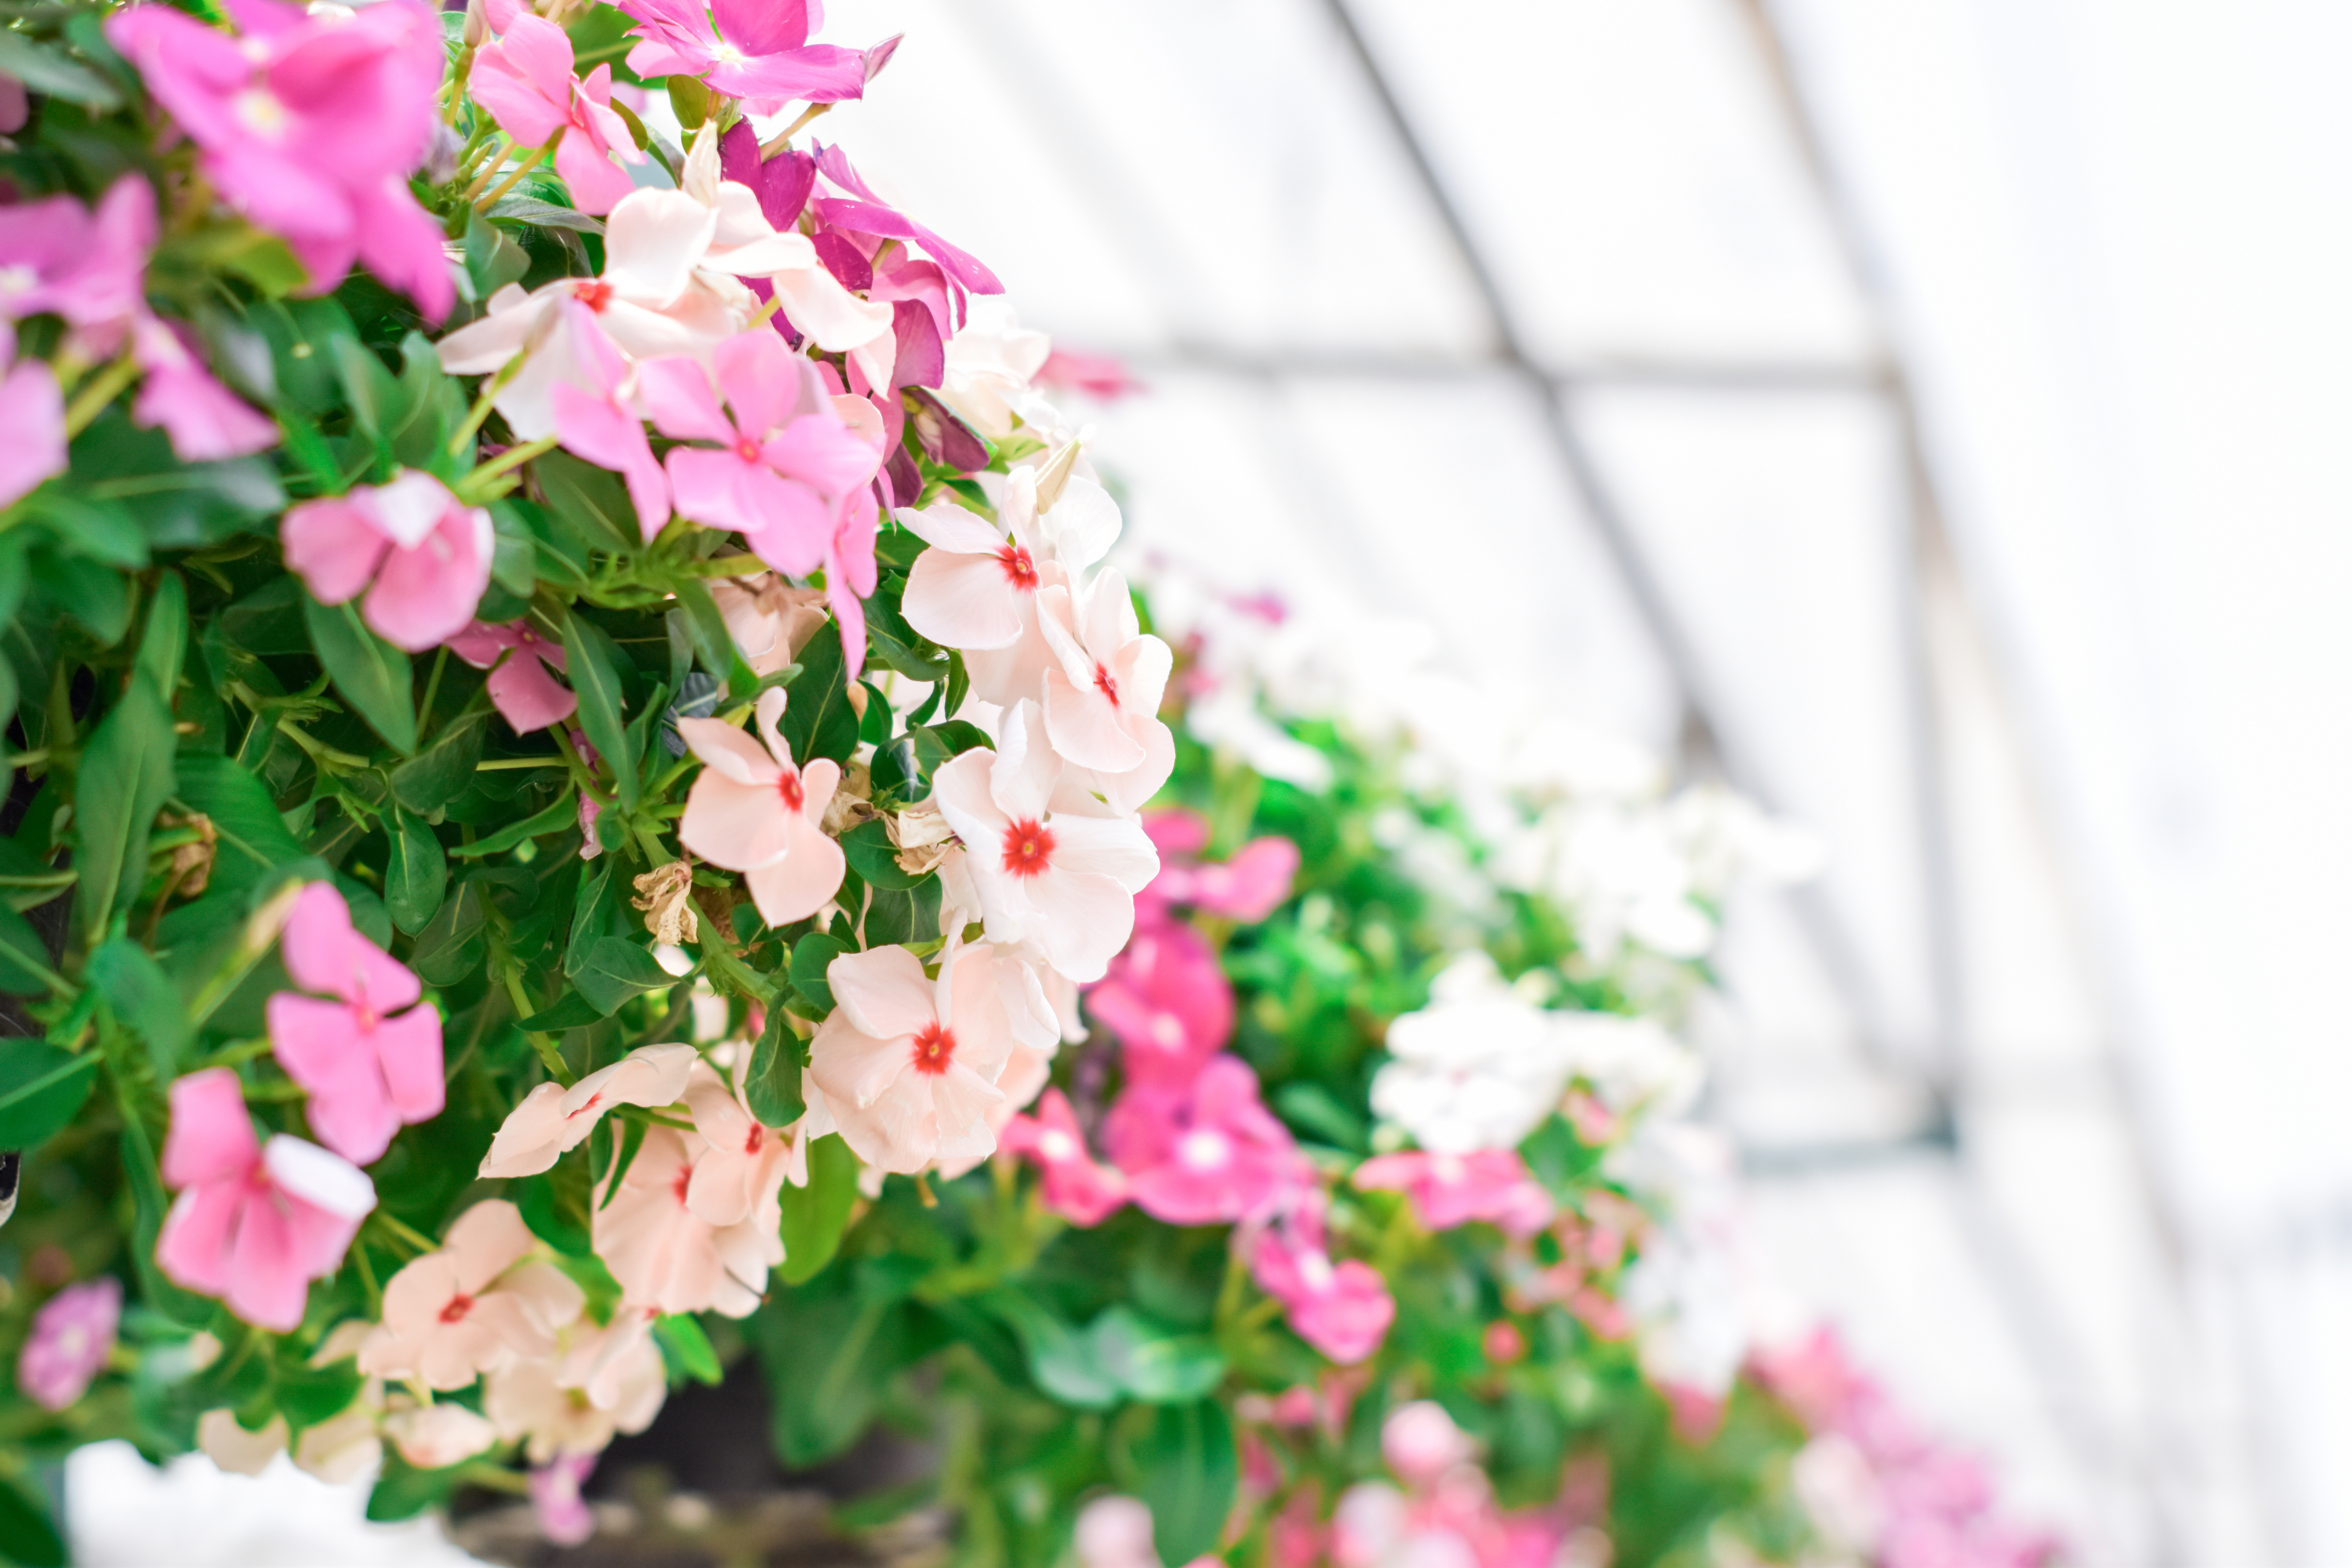 hanging | hanging baskets | flowers | flowers for hanging baskets | hanging basket trailers | plants | hanging basket